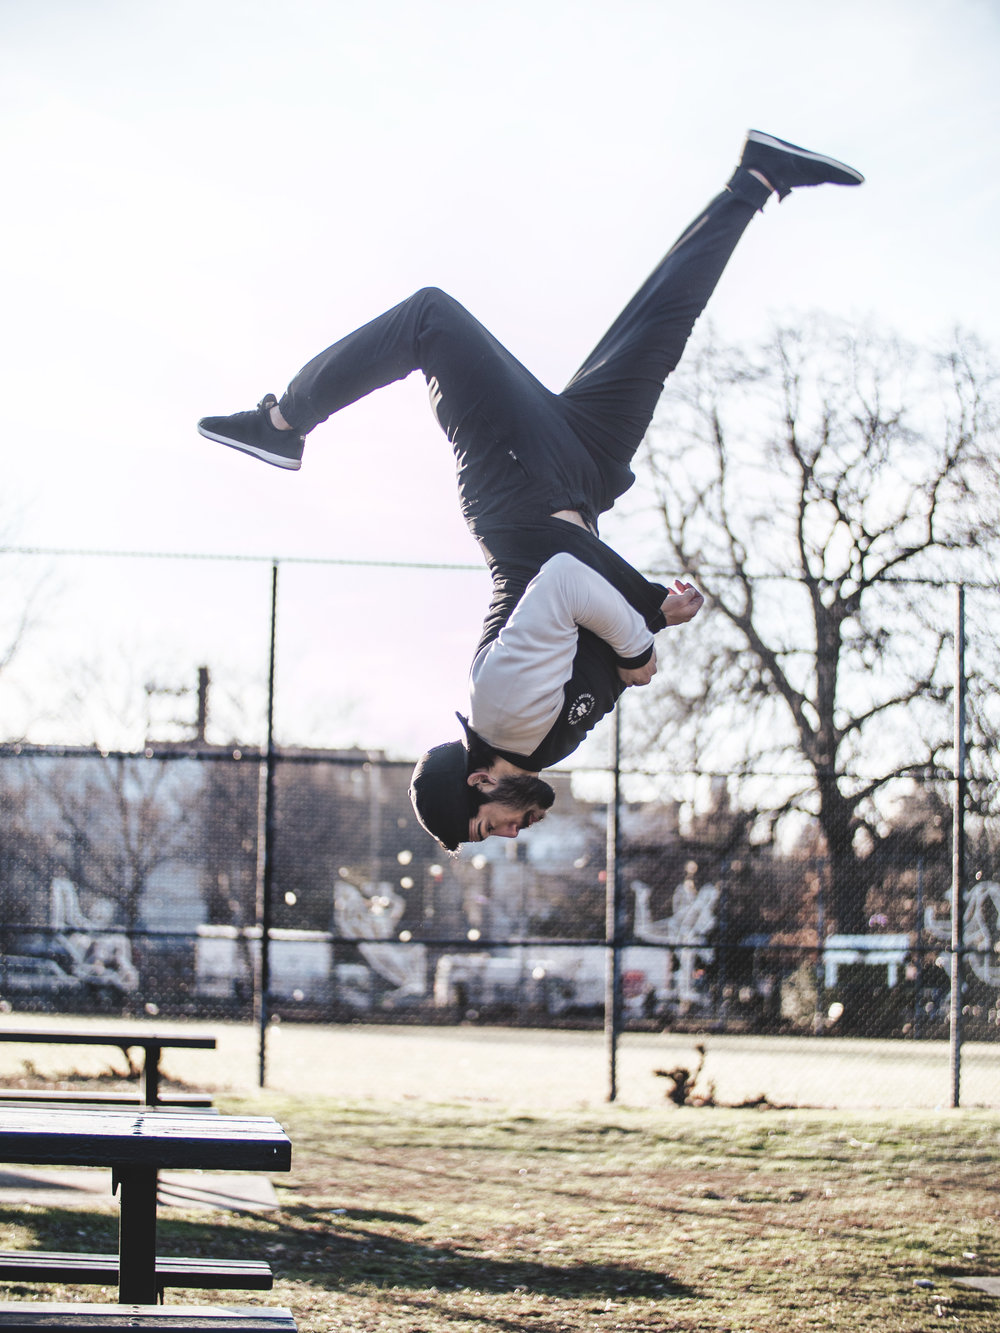 Mike-Araujo-Parkour-New-York-NYPK-StrikeMvmnt-Freerunning-NYC-Backflip-Vanguard-Steve-Zavitz-Brooklyn